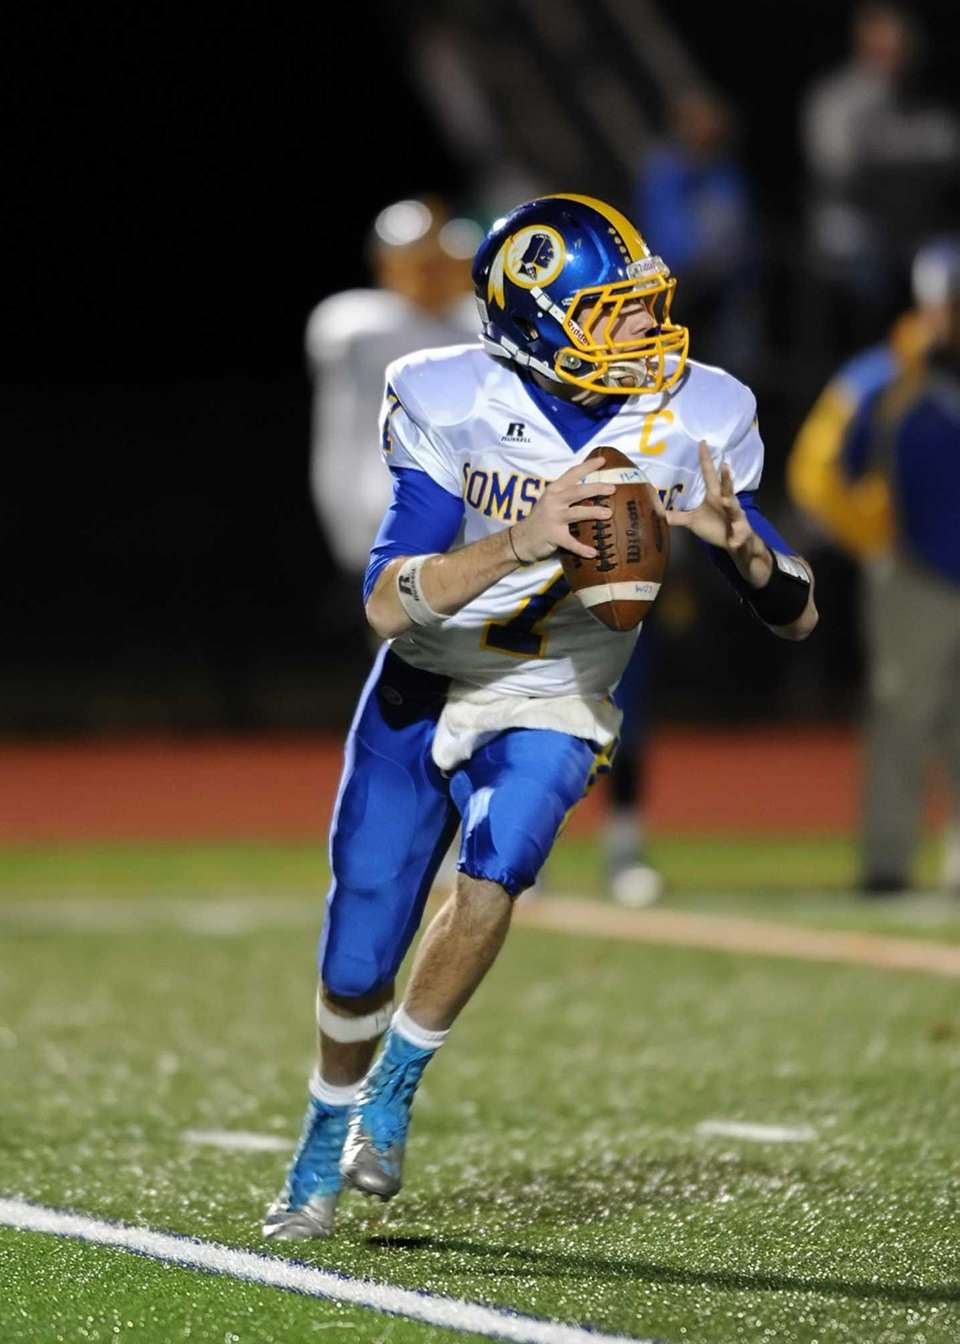 Comsewogue quarterback Ryan Keefe looks to pass down